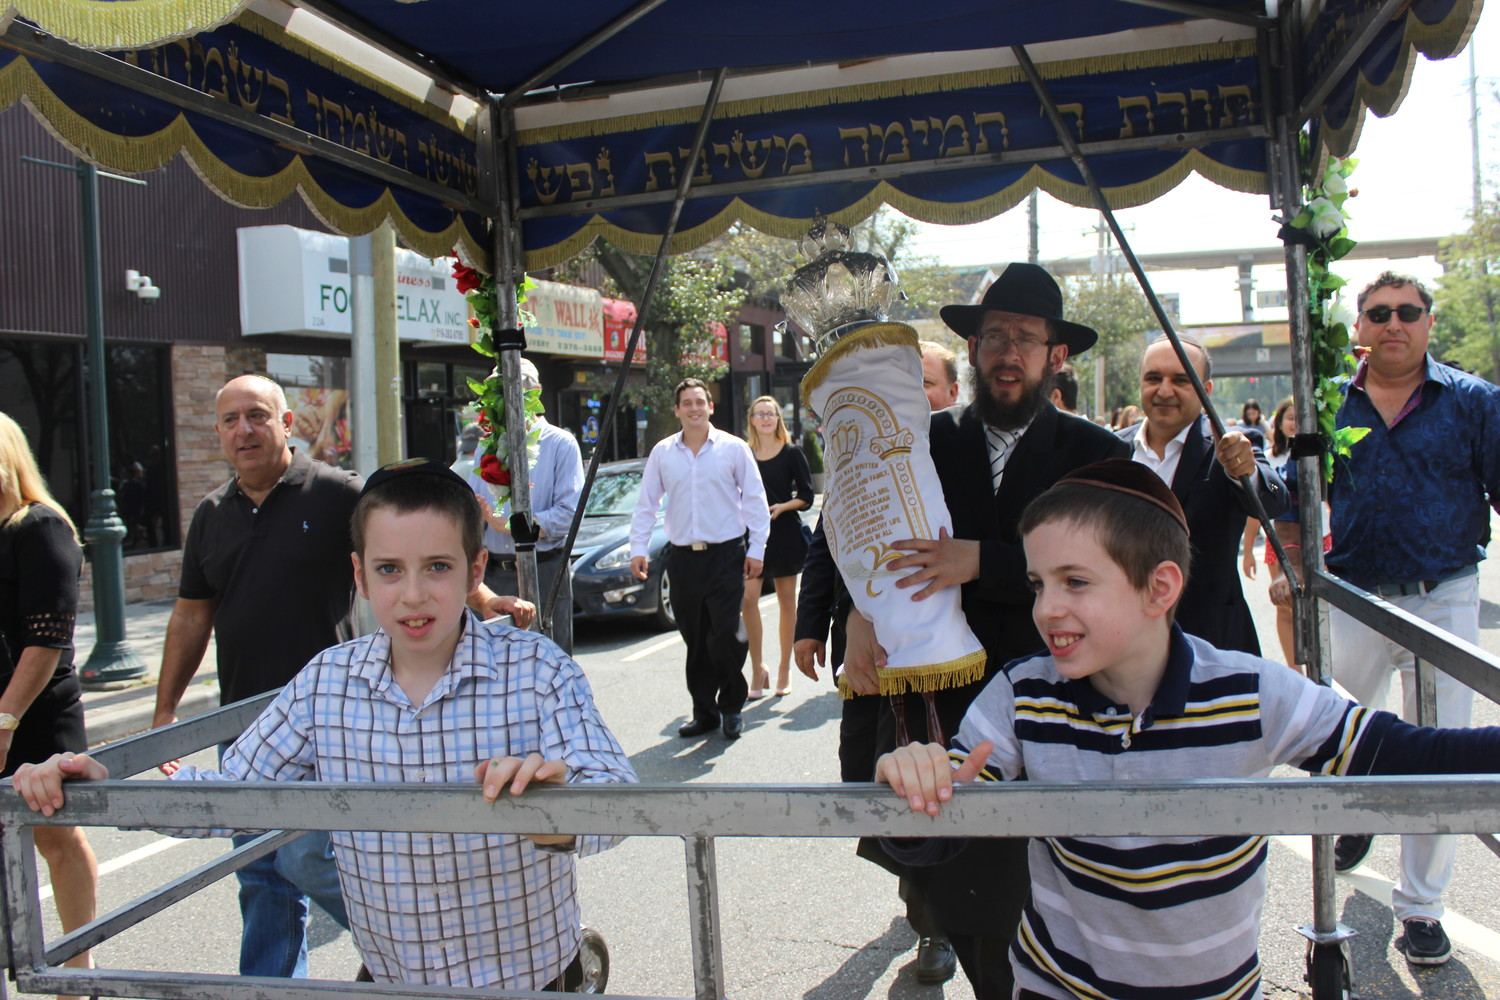 Rabbi Shimon Kramer, of the Chabad Center for Jewish Life in Merrick, marched up Merrick Avenue with his congregation's new Torah scroll when it was unveiled this fall. His sons Binyamin and Leibel, both 10, joined him.